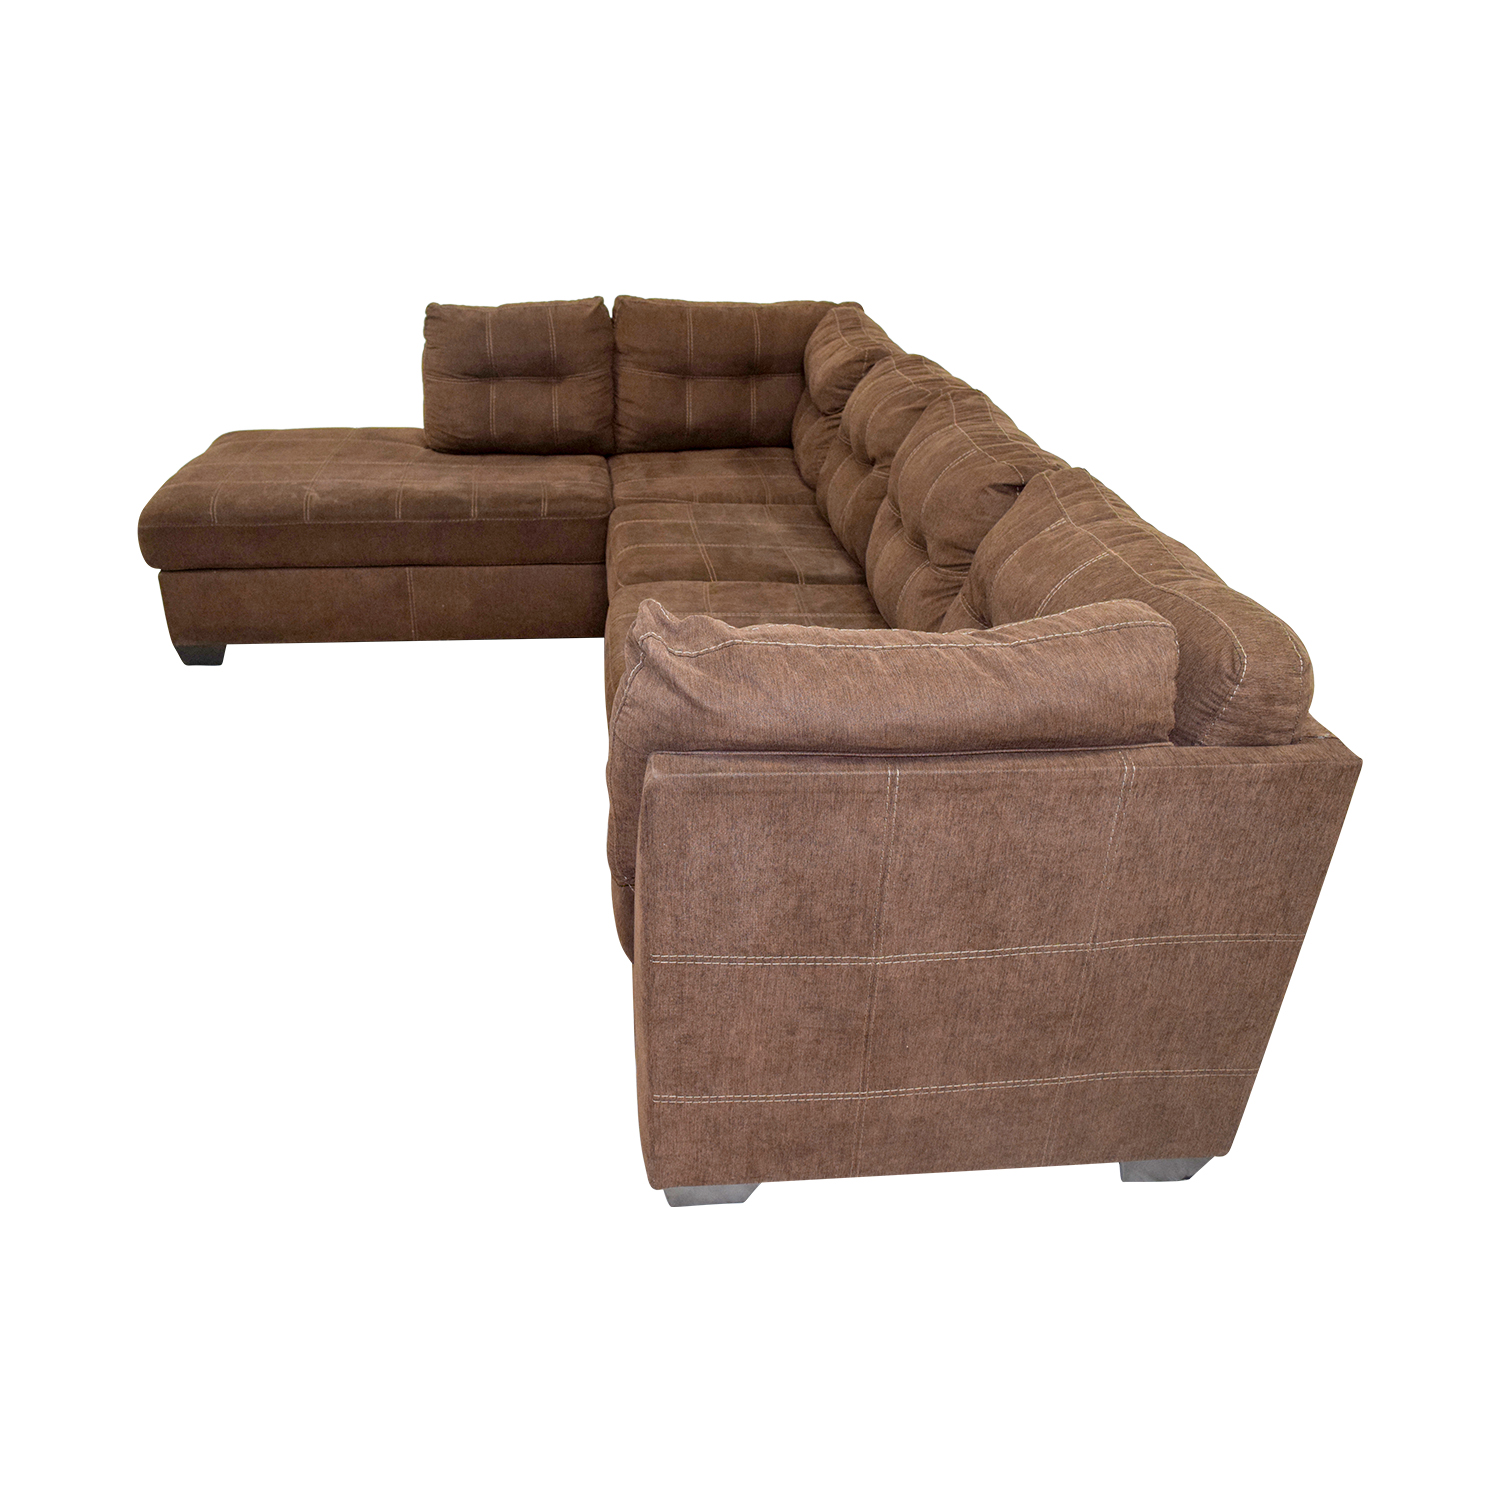 Used Sofas Online: Brown L-Shaped Chaise Sectional Sofa / Sofas